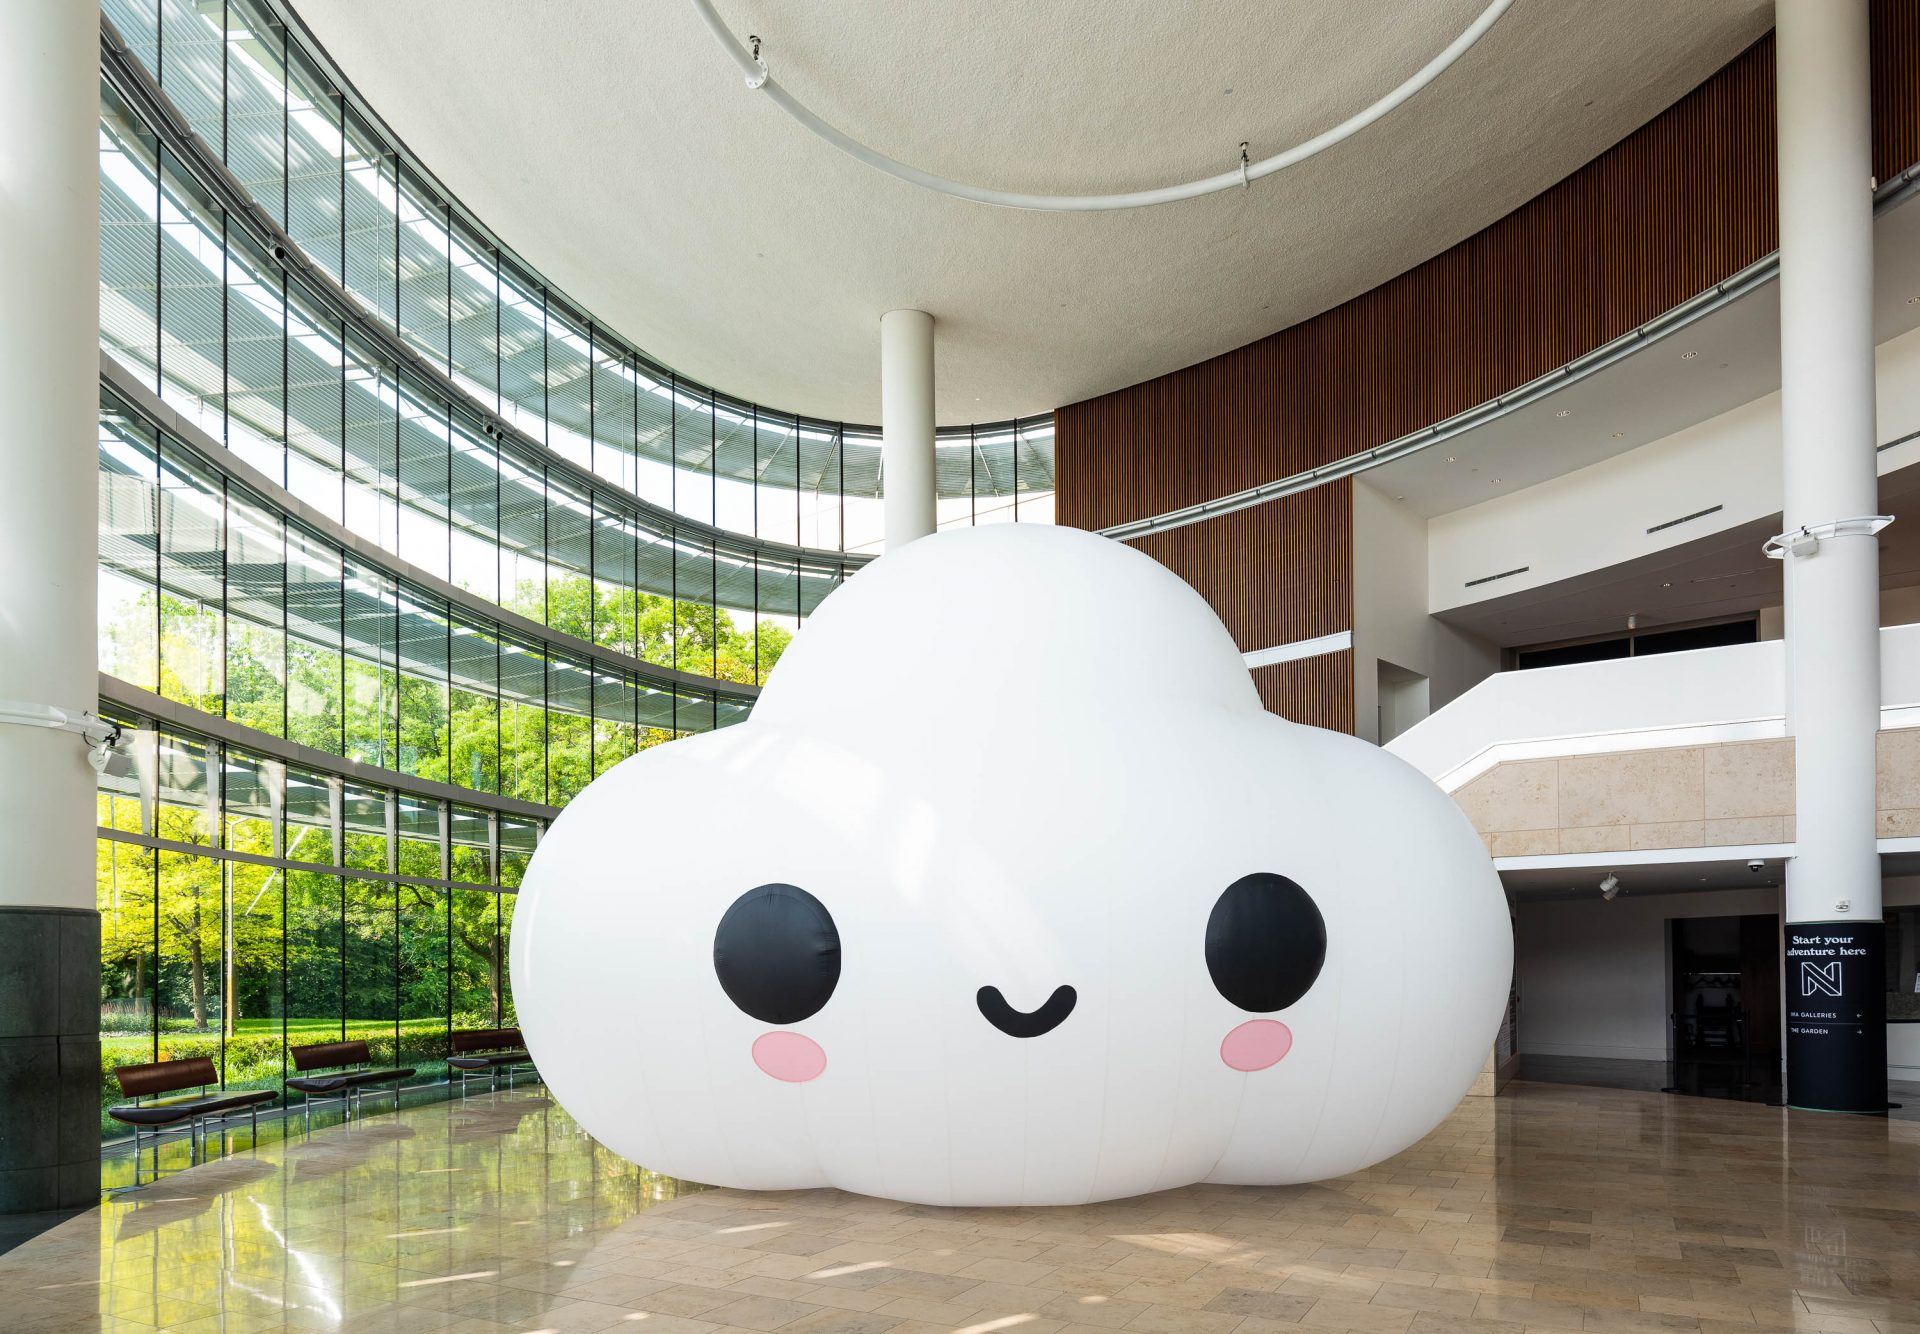 """Photo courtesy of Indianapolis Museum of Art at Newfields. """"Little Cloud"""", 2021, Commissioned by the Indianapolis Museum of Art at Newfields"""